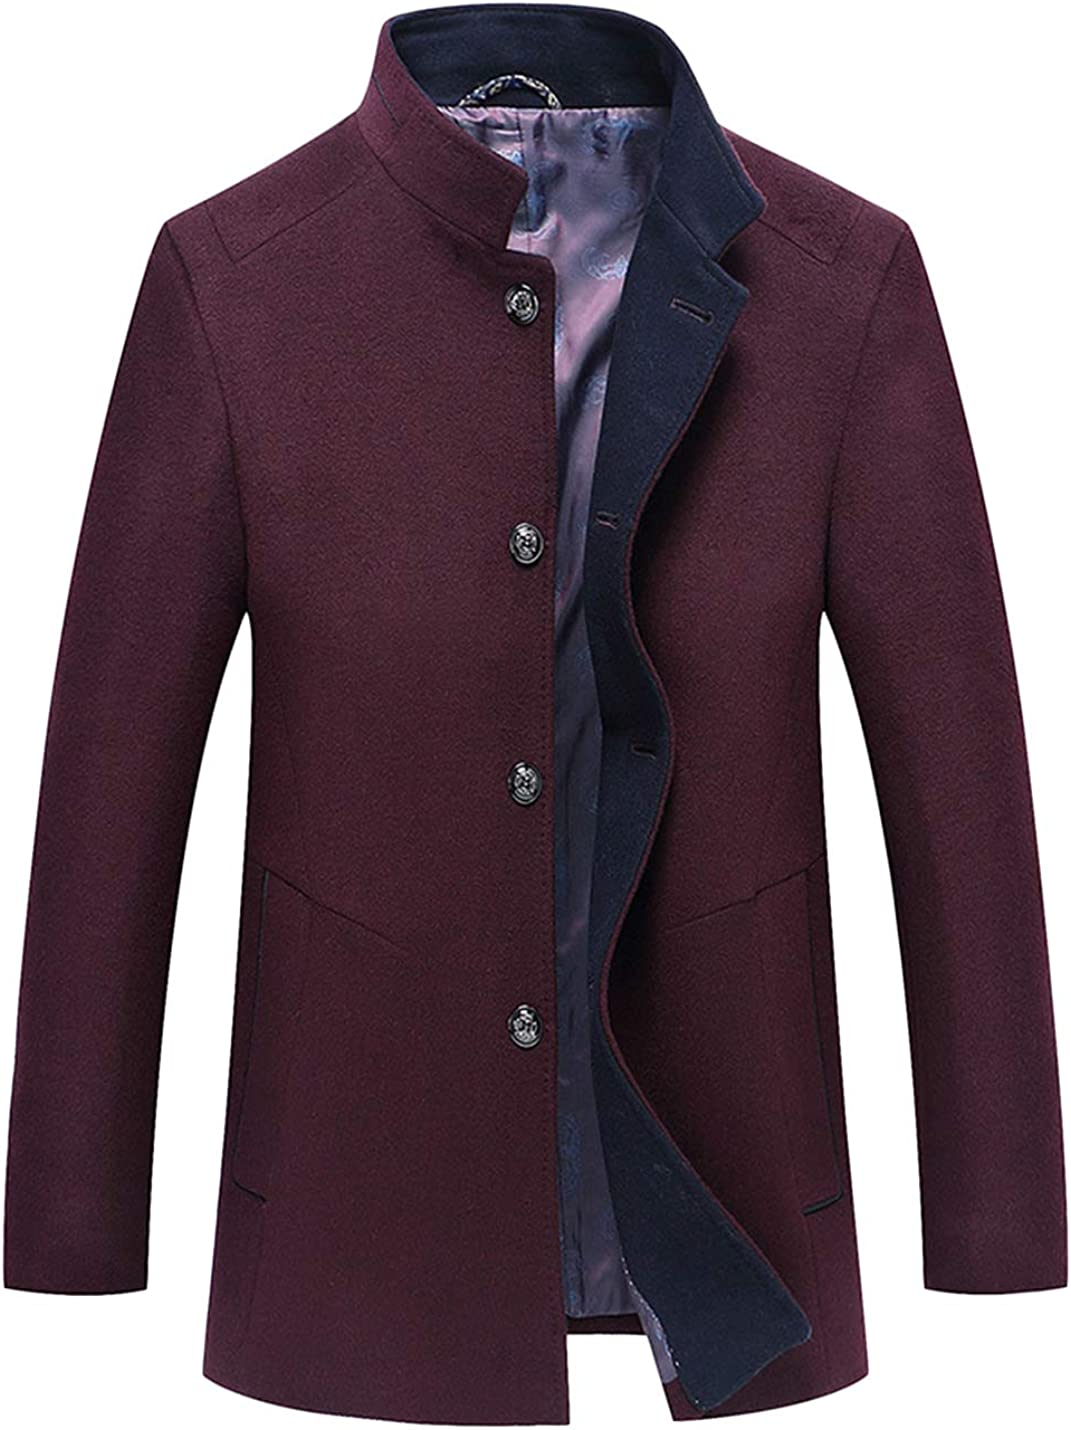 Uaneo Men's Winter Thicken Stand Collar Single Breasted Wool Blend Warm Pea Coat (Wine Red, Medium)